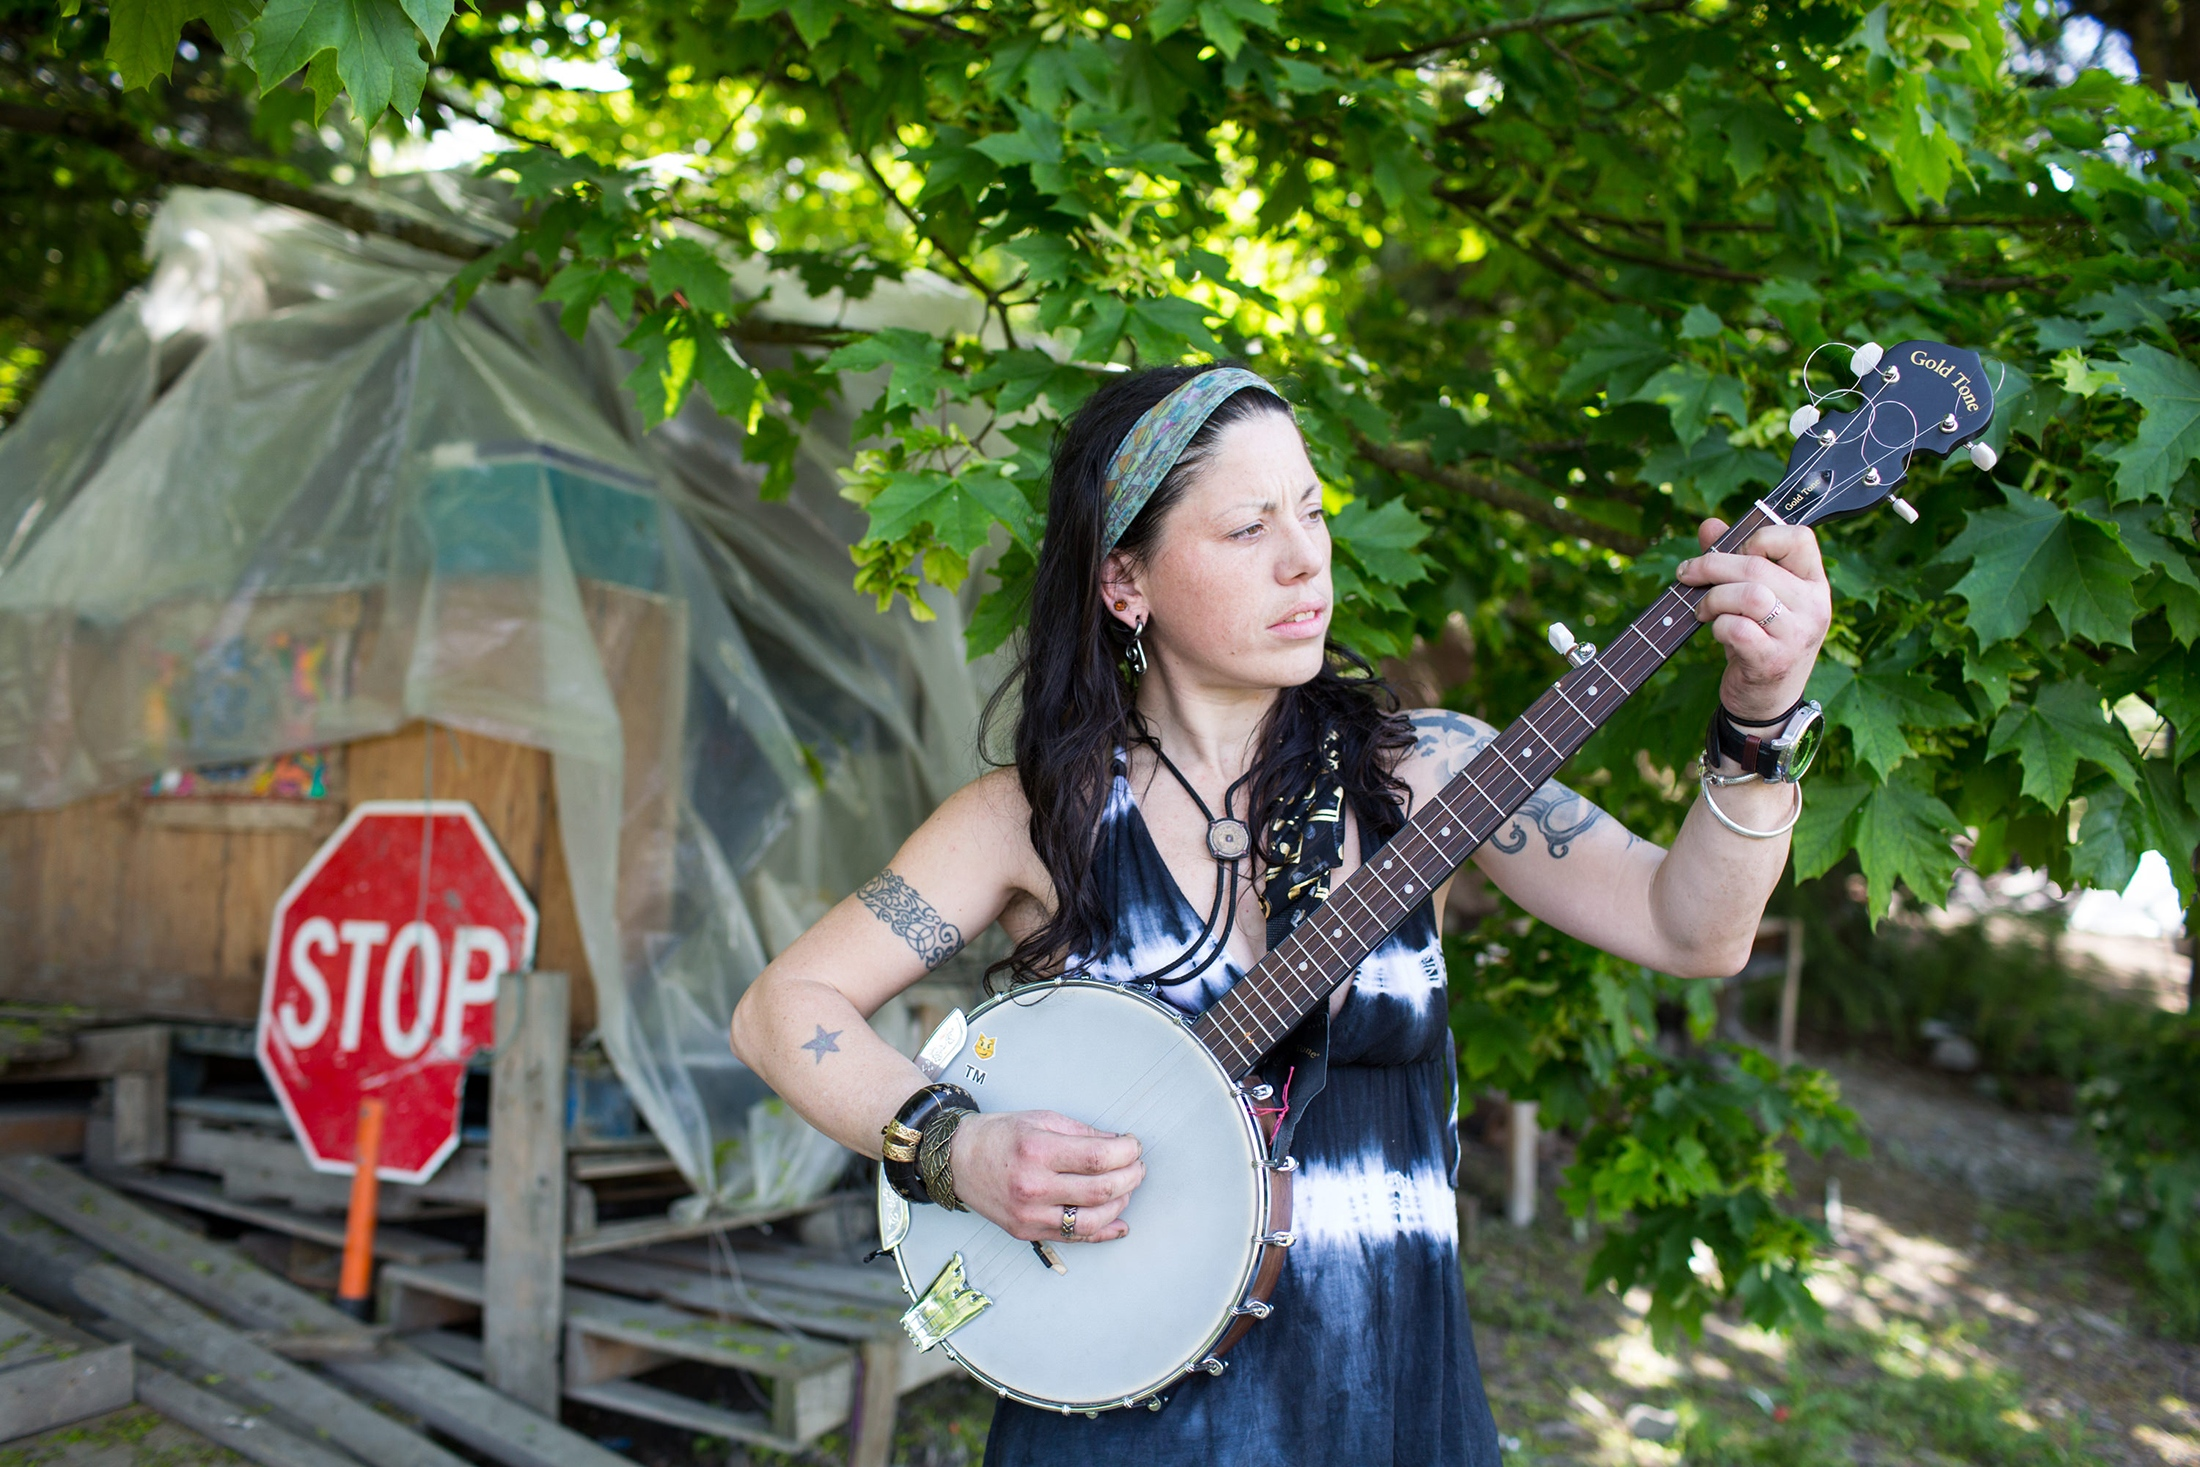 Paige Conca, 35, plays the banjo at her camp on the side of I-90 in Seattle, Washington. She has been homeless for four years.  'I cried all night': homeless women on their first night on the streets' for the Guardian